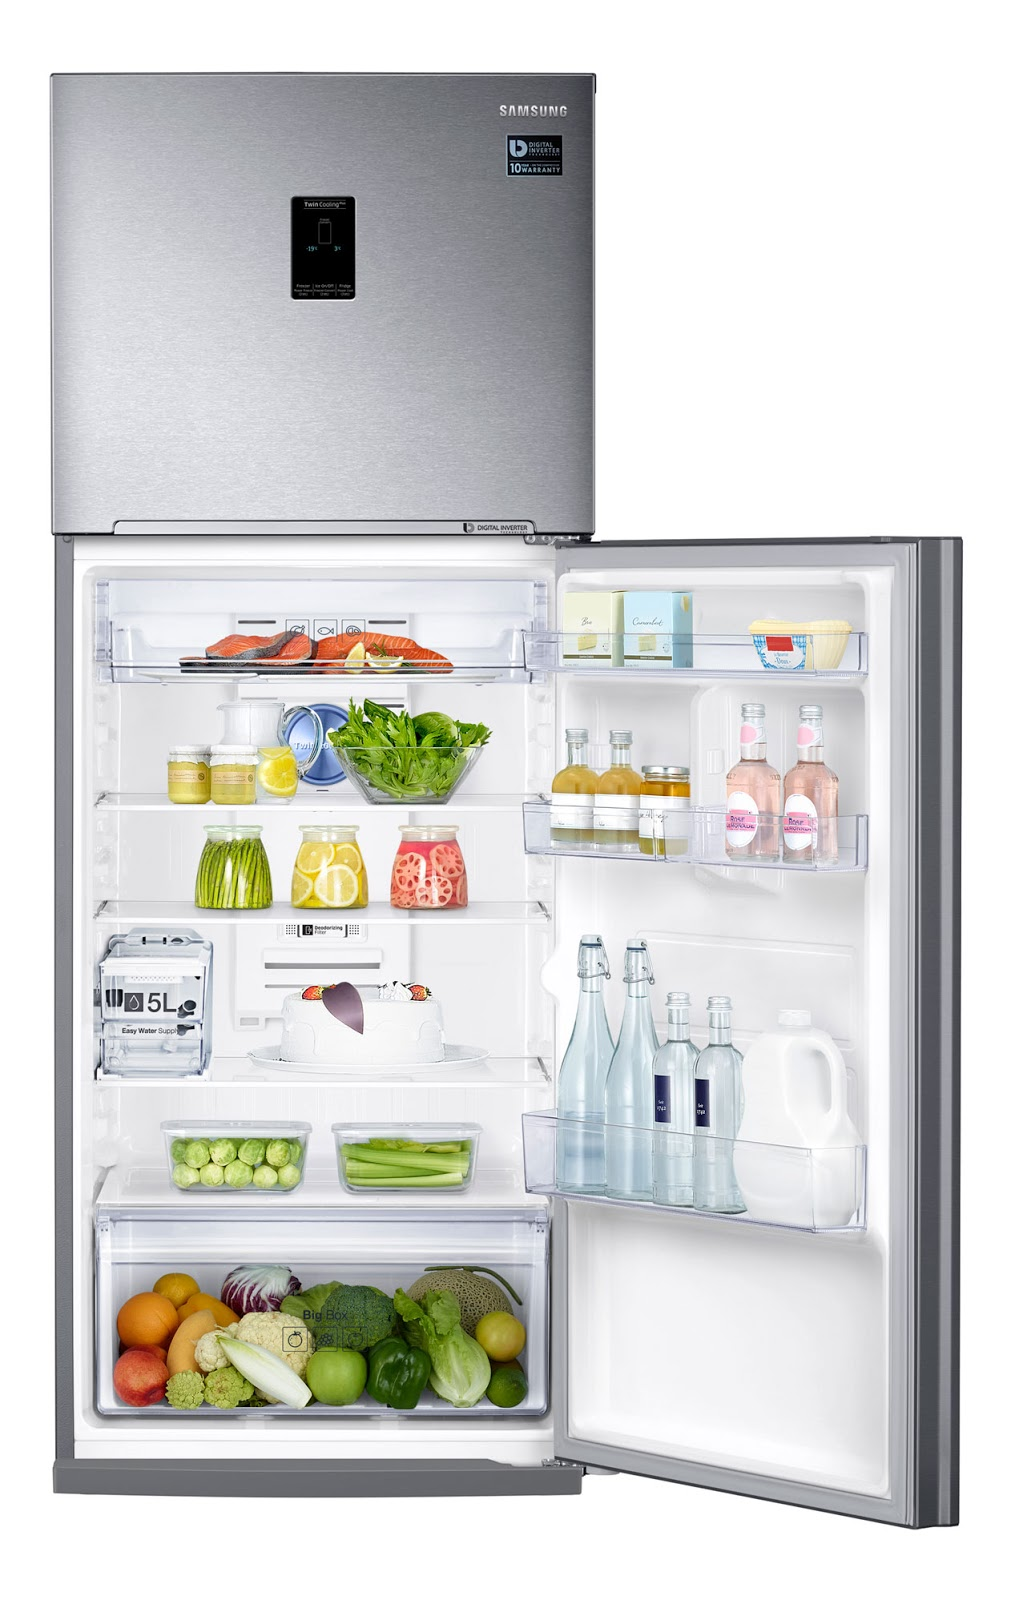 New Samsung Refrigerator Come With Twin Cooling Plus And